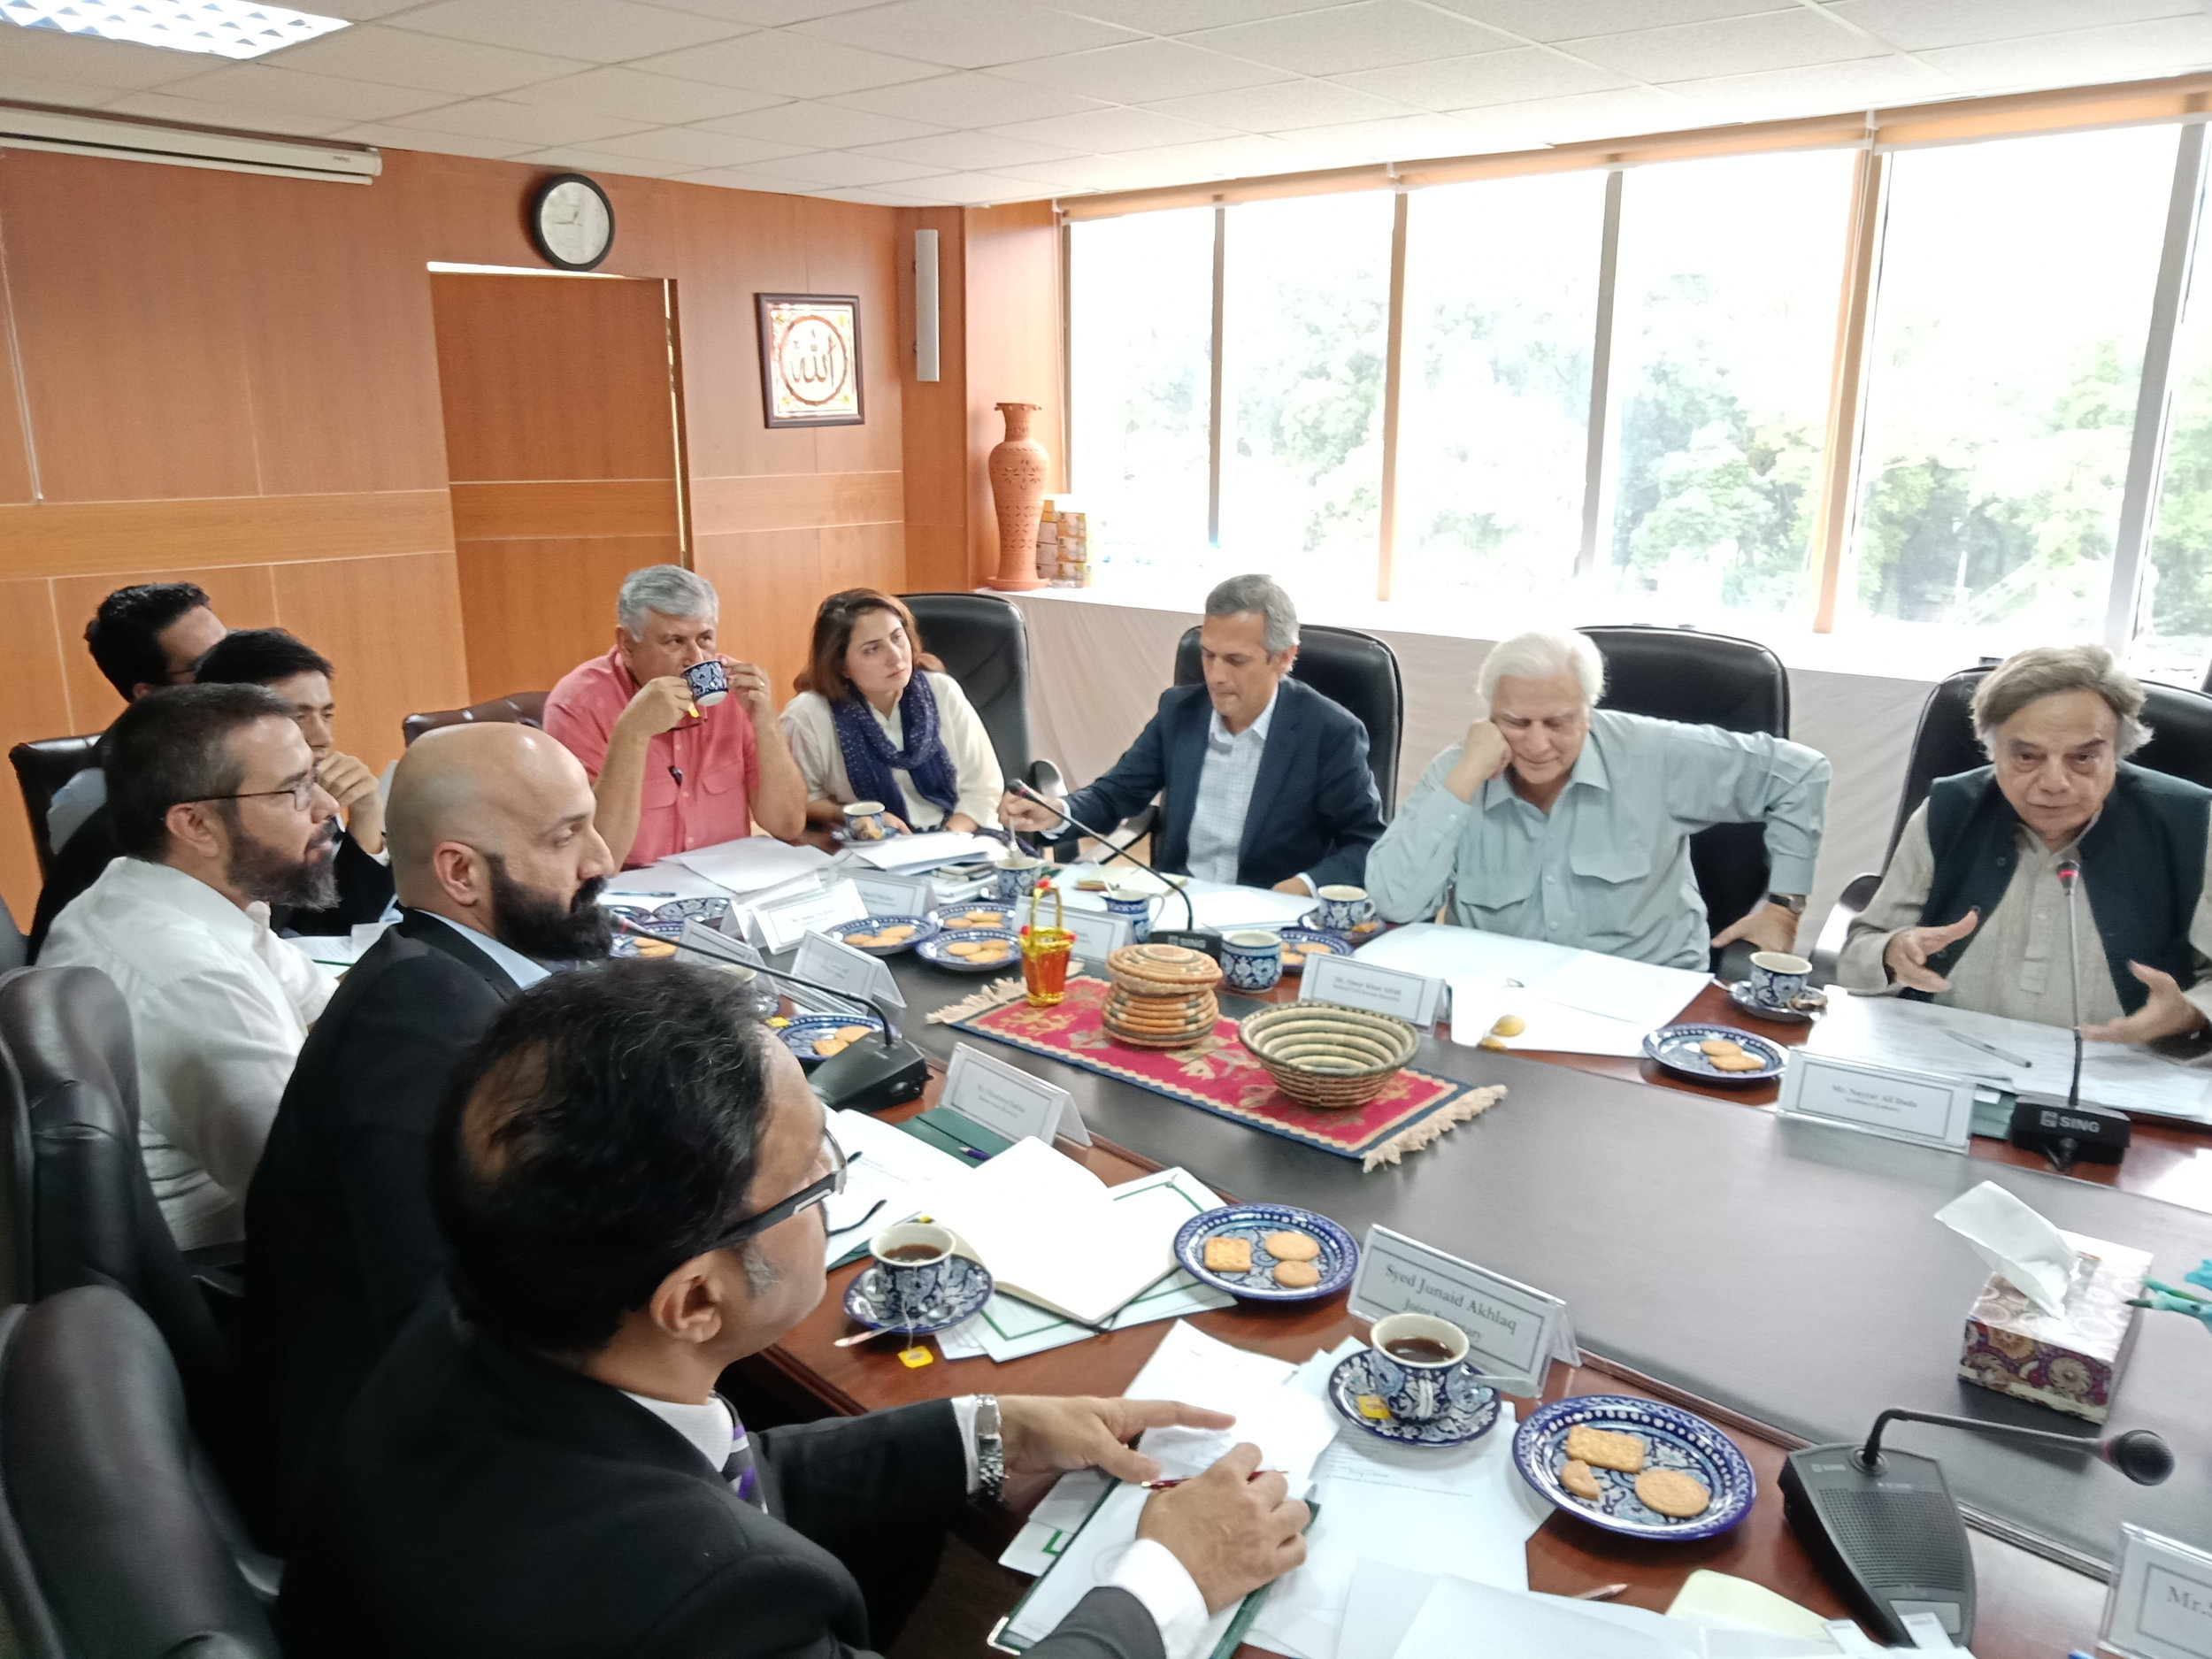 Minister for Federal Education and Professional Training, and National History & Literary Heritage Division, Shafqat Mahmood chairing first meeting of committee to suggest best possible utilization of Heritage Buildings at Committee room of National History and Literary Heritage Division in Islamabad on August 27, 2018. The Committee members include: Mr. Shafqat Mahmood, Mr. Nayyar Ali Dada, Mr. Rashid Rana, Mr. Shamoon Sultan, Mr. Omar Hasan, Dr. Faisal Khan, Mr. Omar Khan Afridi, Mr. Naeem Safi, Mr. Akram Dost Baloch, Miss Muneeza Hashmi, Miss Adeela Suleman, Mr. Samar Ali Khan, Miss Marvi Mazhar, Miss Asma Rashid Khan & Engr, Aamir Hasan.  https://www.app.com.pk/shafqat-mehmood-forms-committees-to-submit-detailed-report-on-important-buildings-within-two-weeks/   https://www.thenews.com.pk/print/360313-shafqat-forms-committees-to-submit-report-on-important-buildings